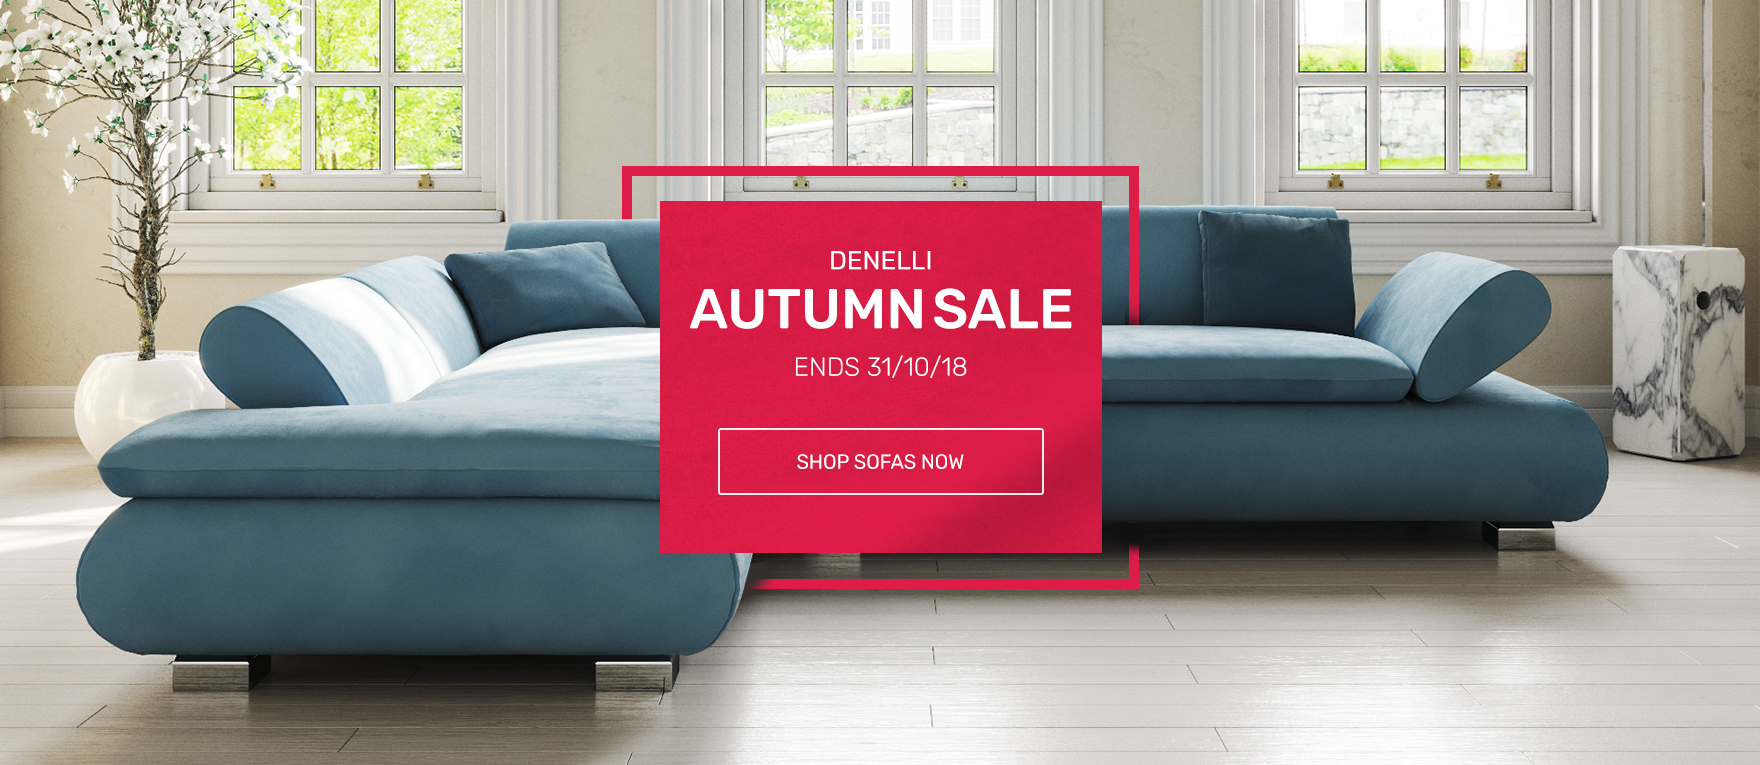 In time for Christmas - Sale Ends 31/10/18